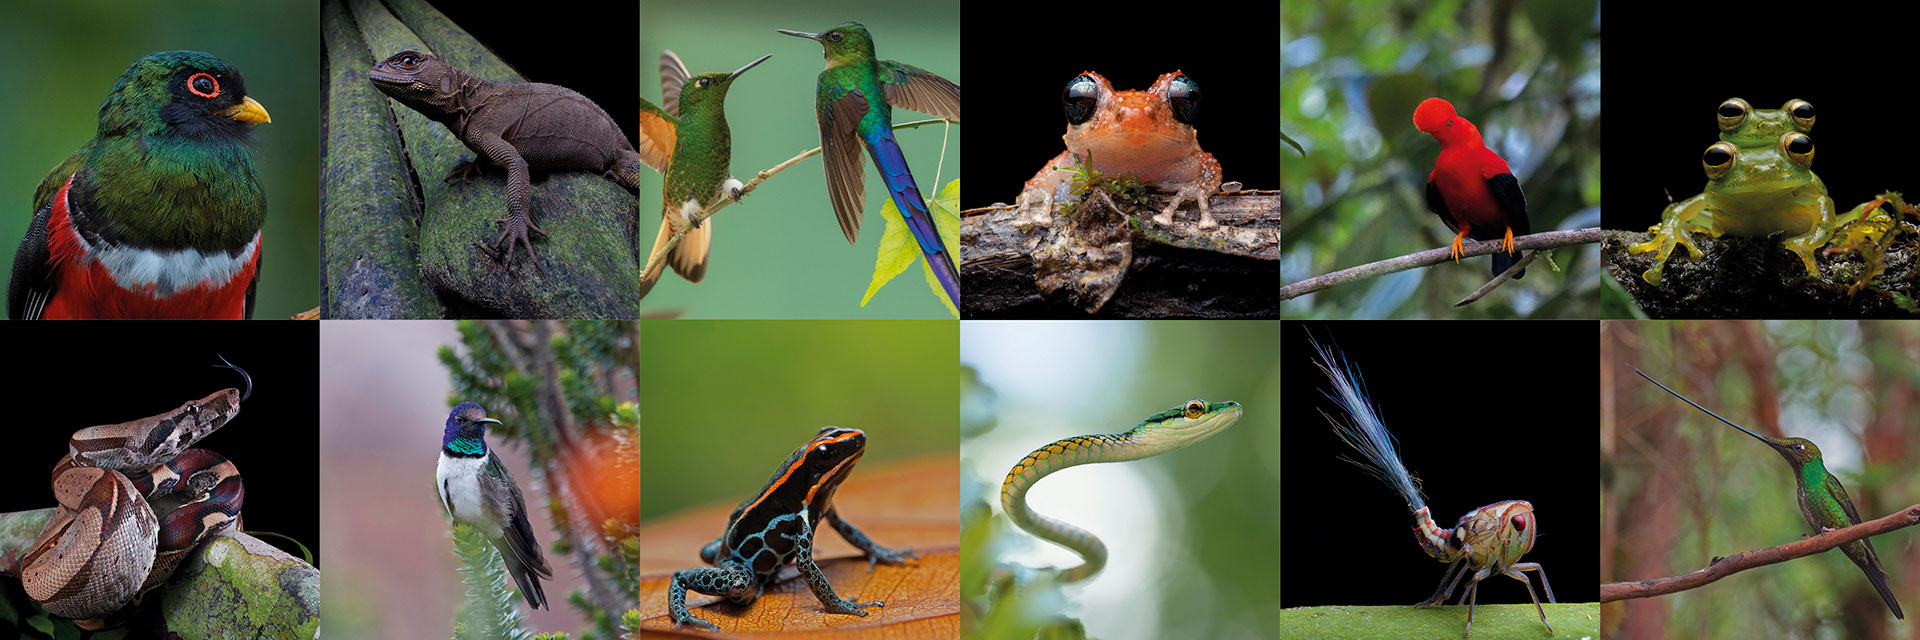 Neoselva-Wildlife-Photography-Collage-Ecuador-Home